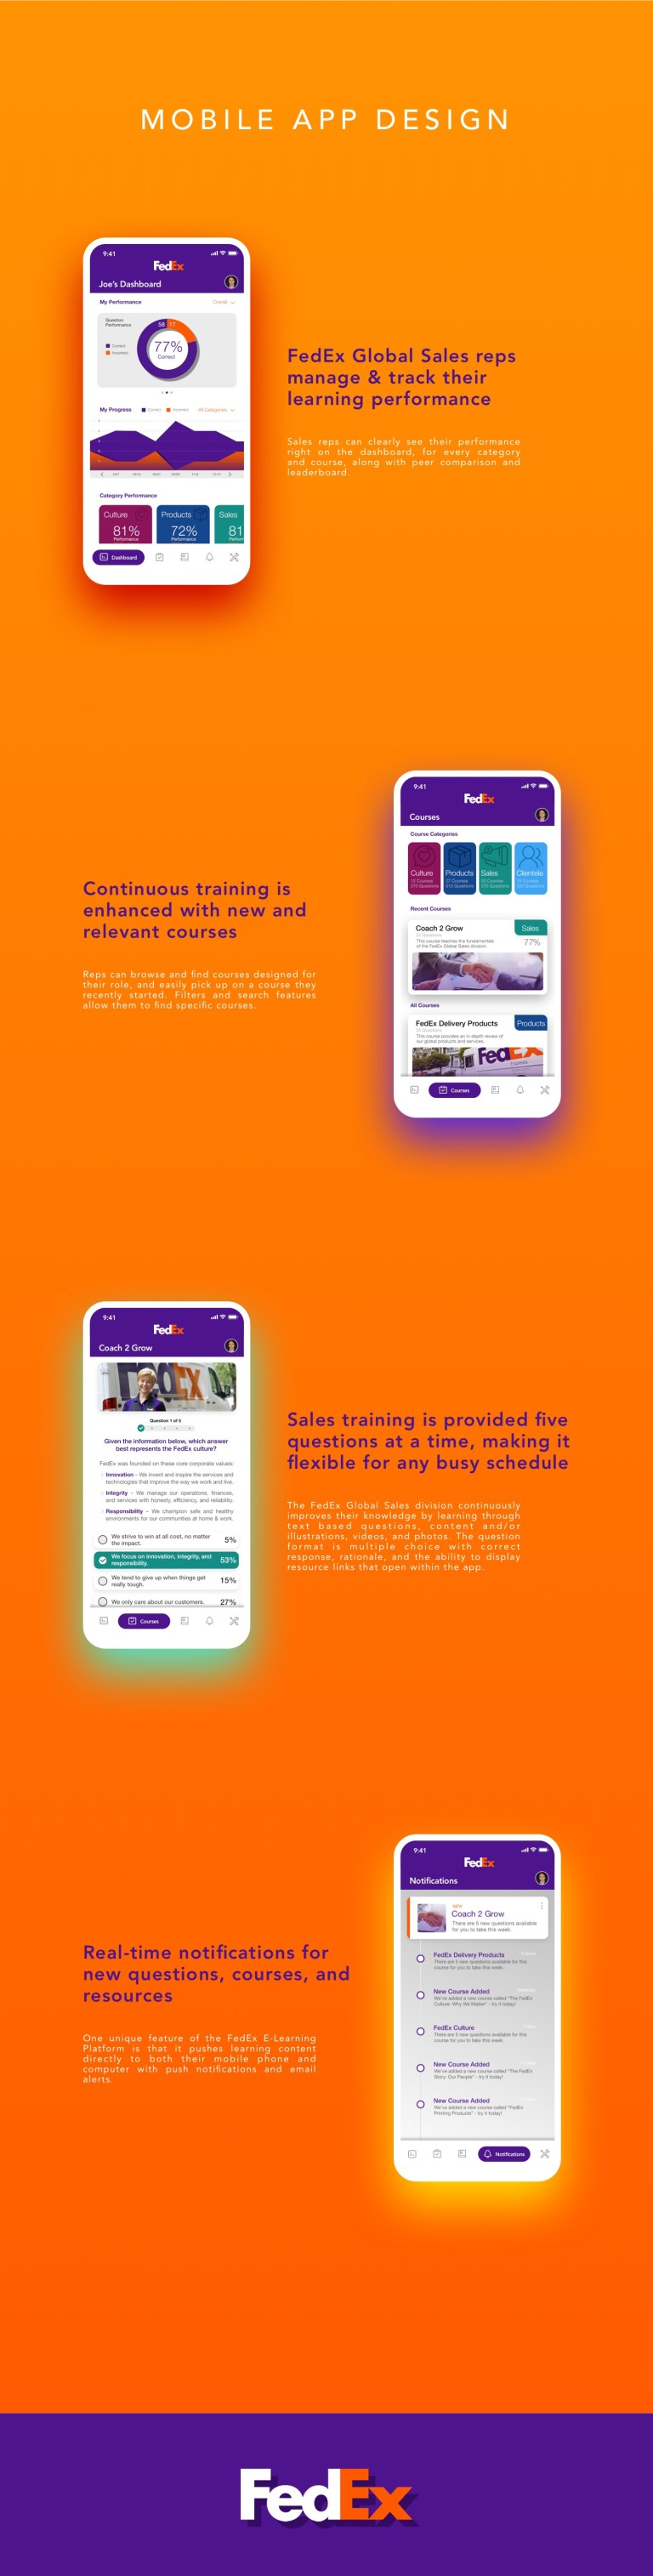 portfolio - fedex mobile screens